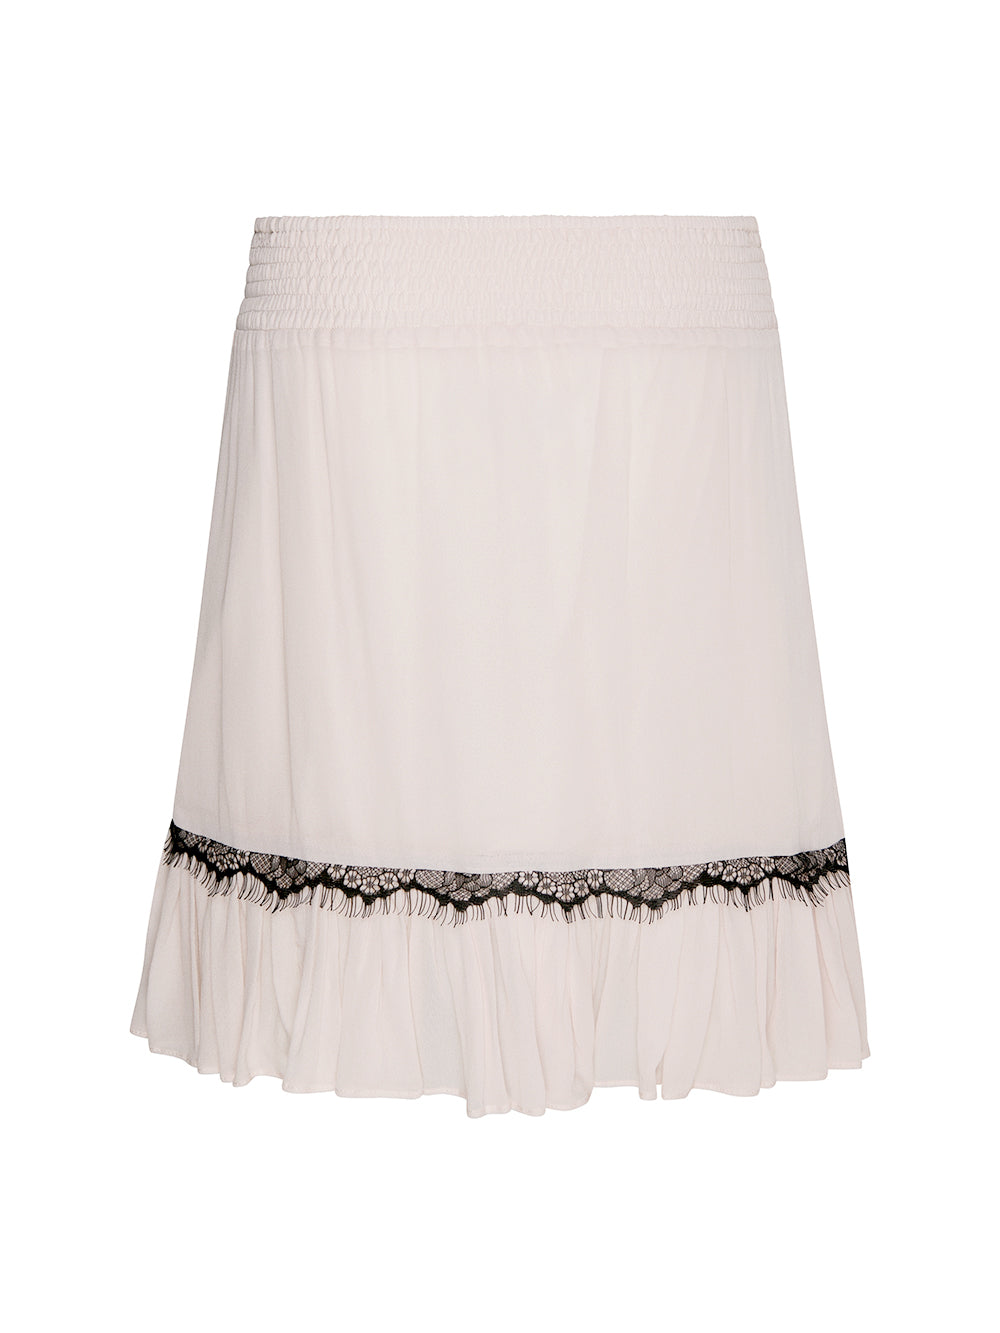 LUNA SLEEPING SKIRT